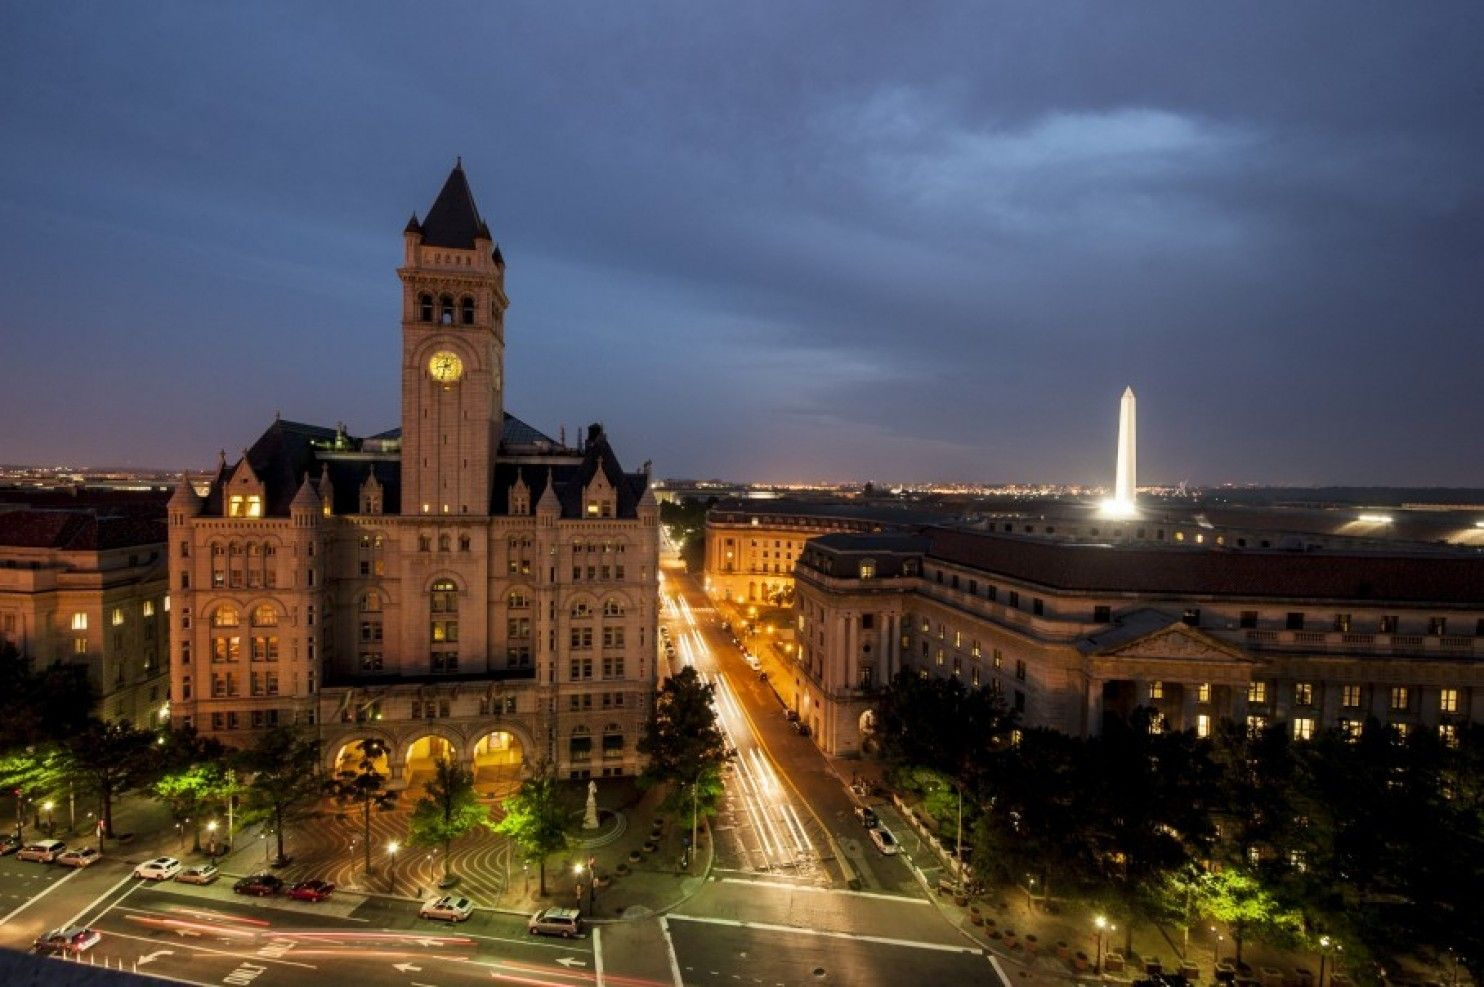 Clock tower tours resume in Trump's DC hotel, but only if